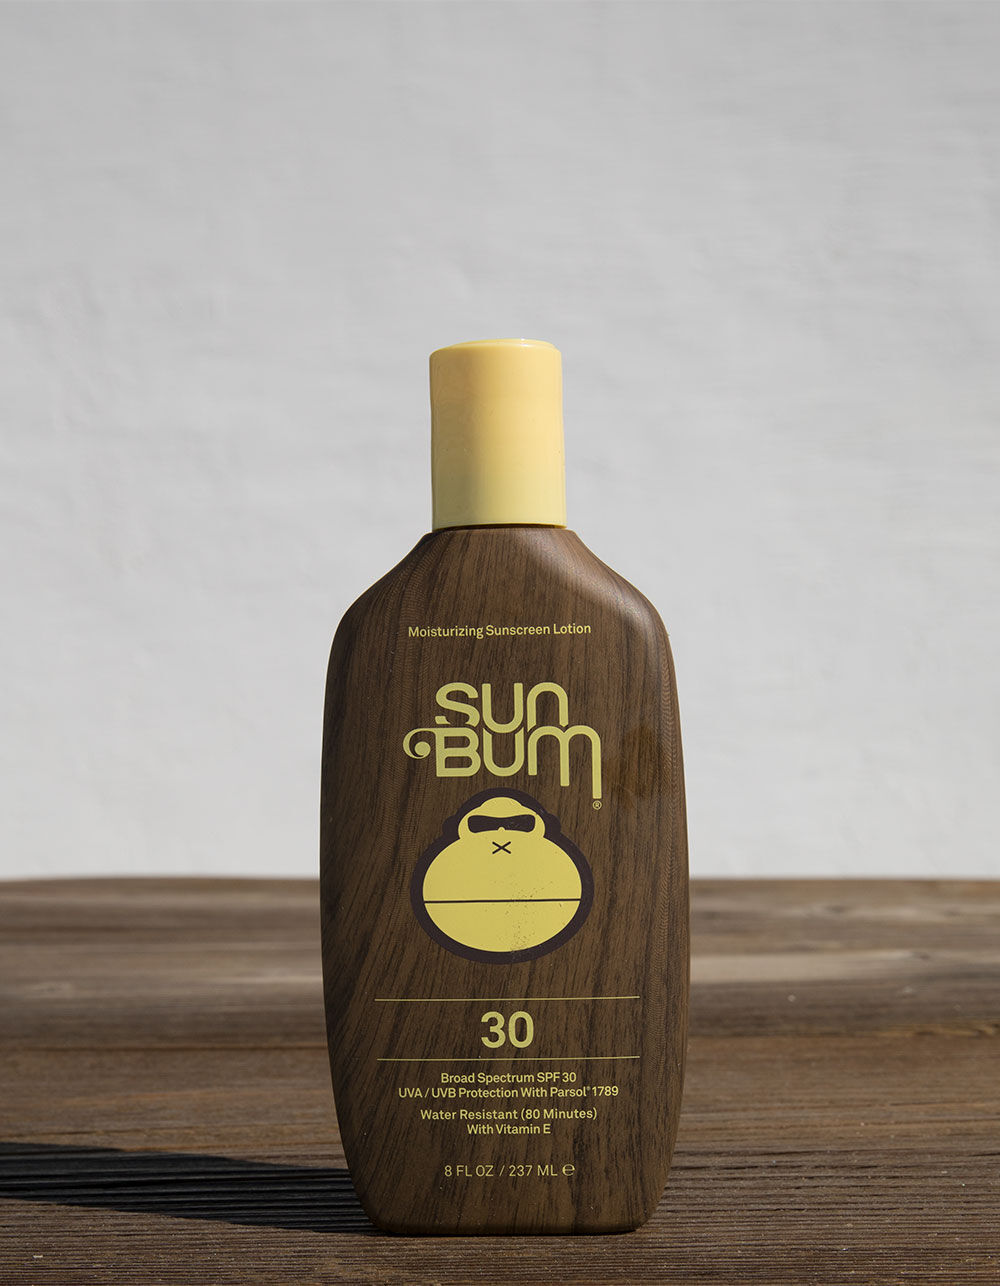 SUN BUM SPF 30 Moisturizing Sunscreen Lotion (8oz)